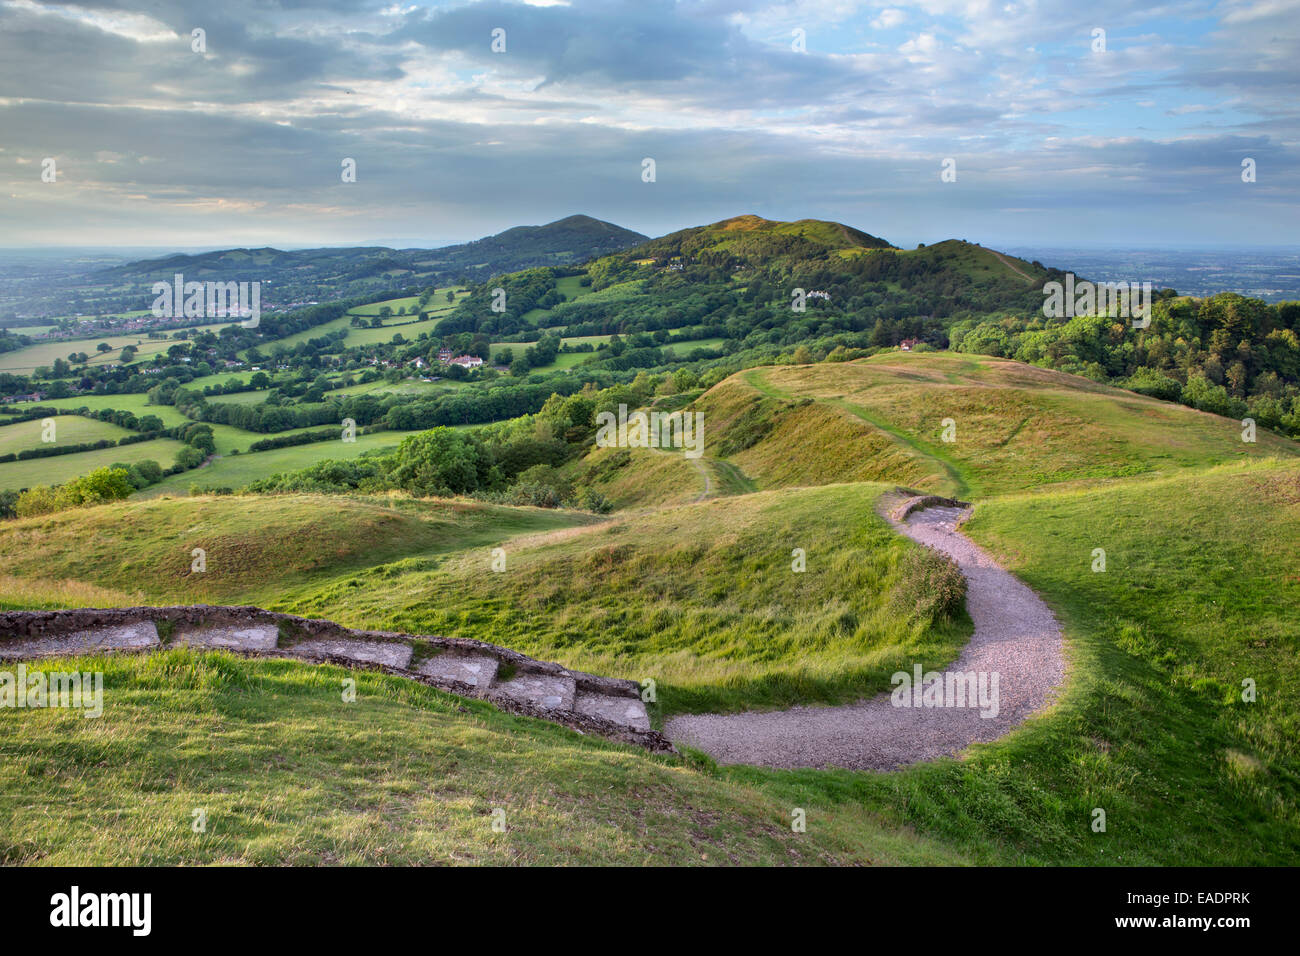 The ramparts of the historic hill fort of British Camp, Herefordshire Beacon, are lit up with the strong light from - Stock Image